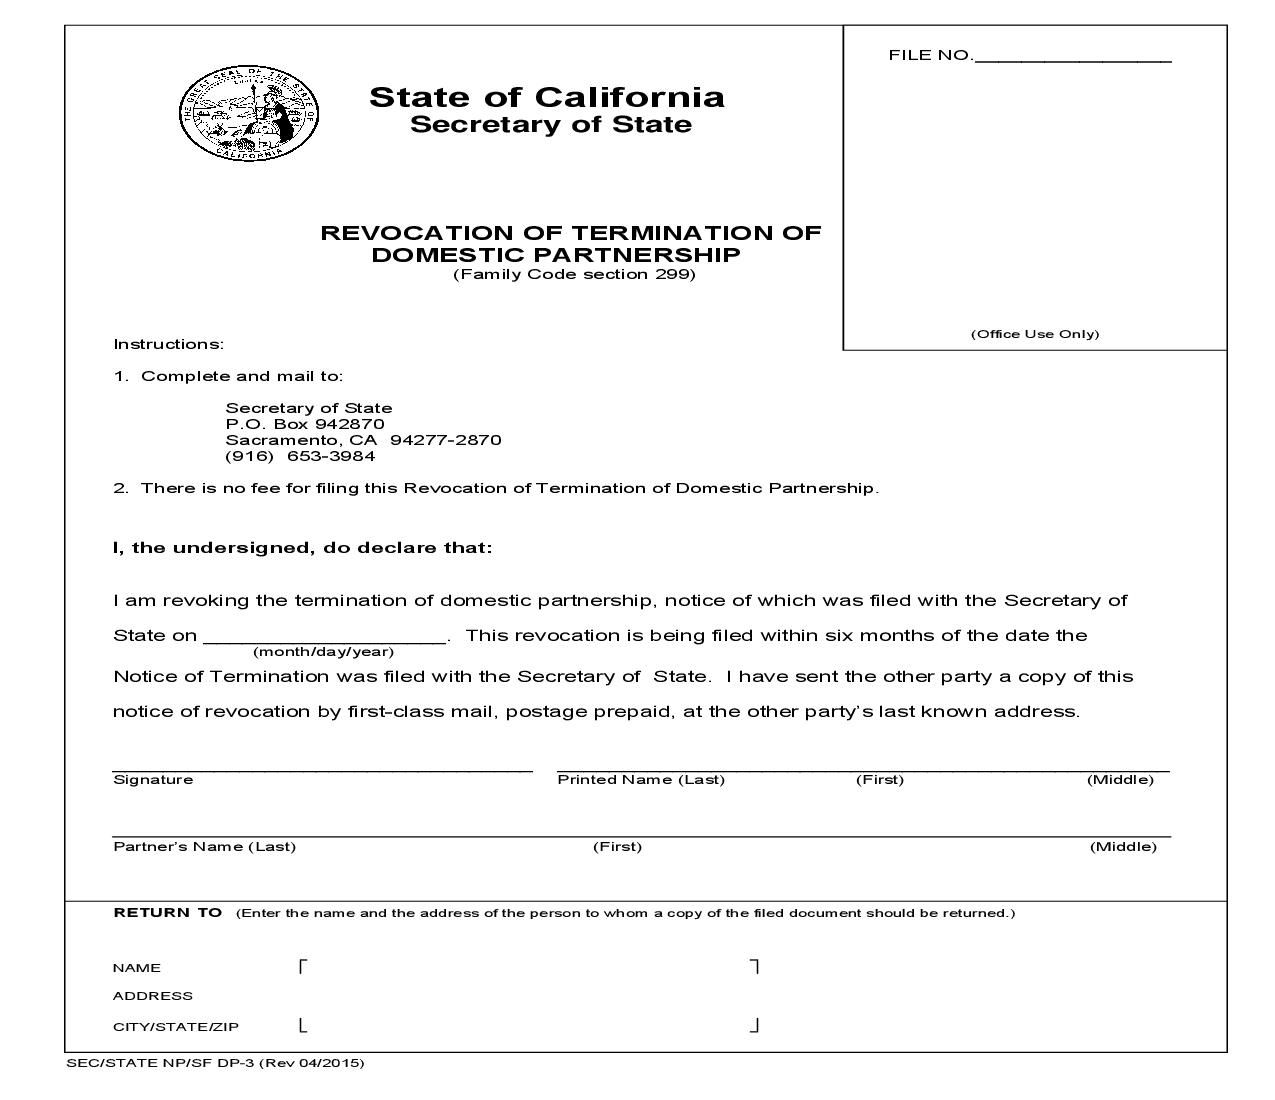 This is a California form that can be used for Domestic